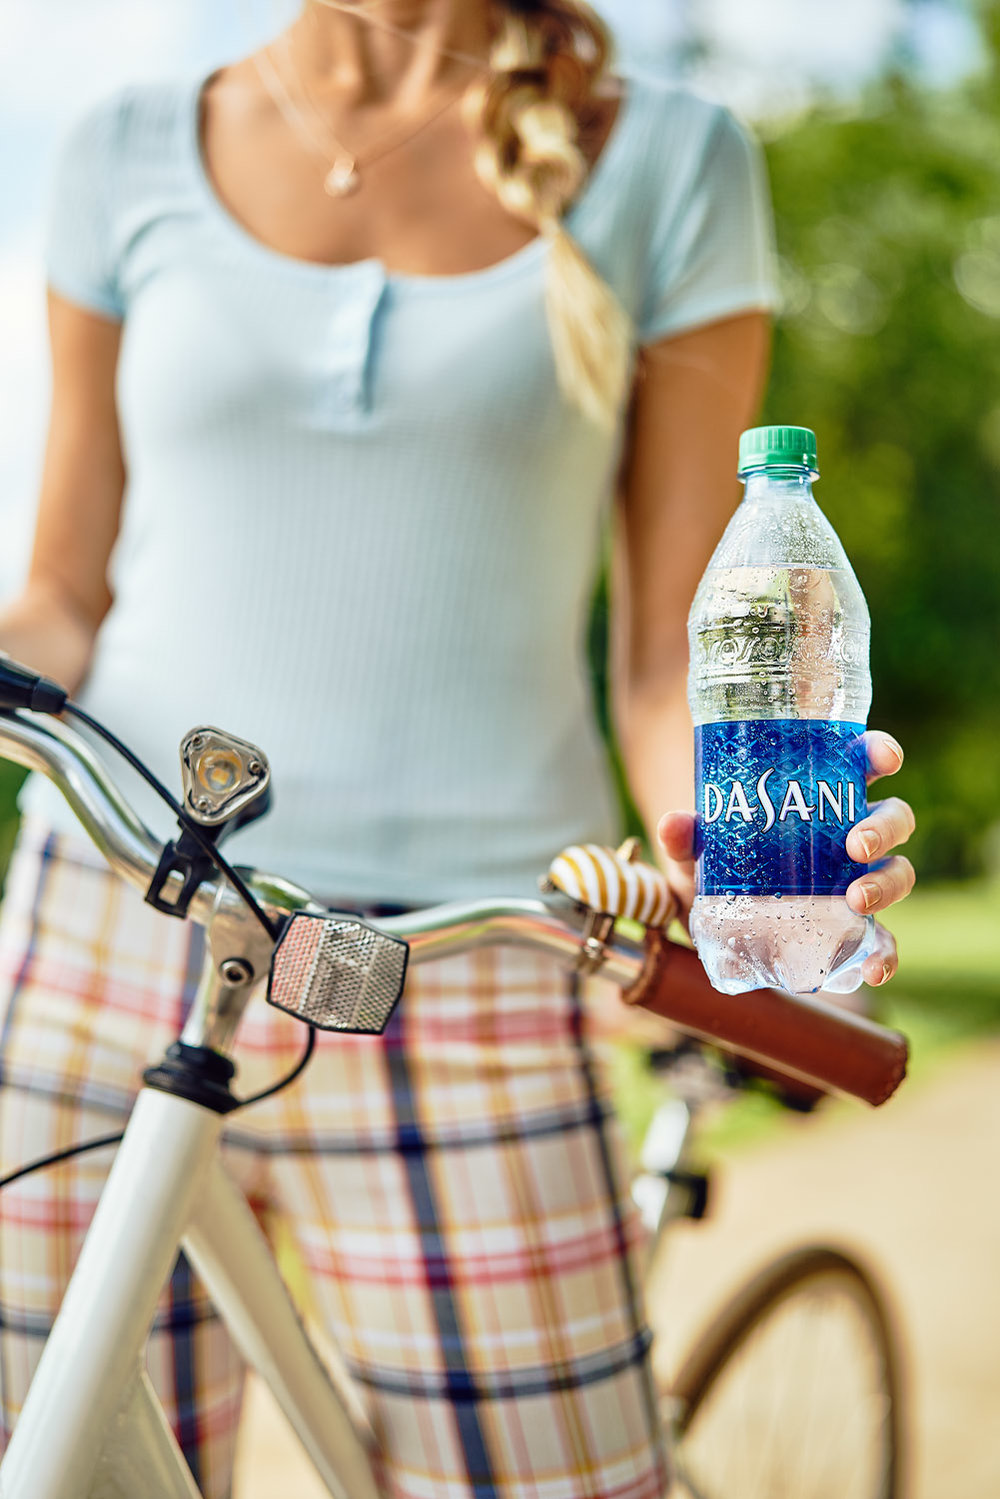 Hales Photo atlanta dasani coca-cola coke lifestyle campaign photographer advertising photography production georgia commercial photos 1006.jpg